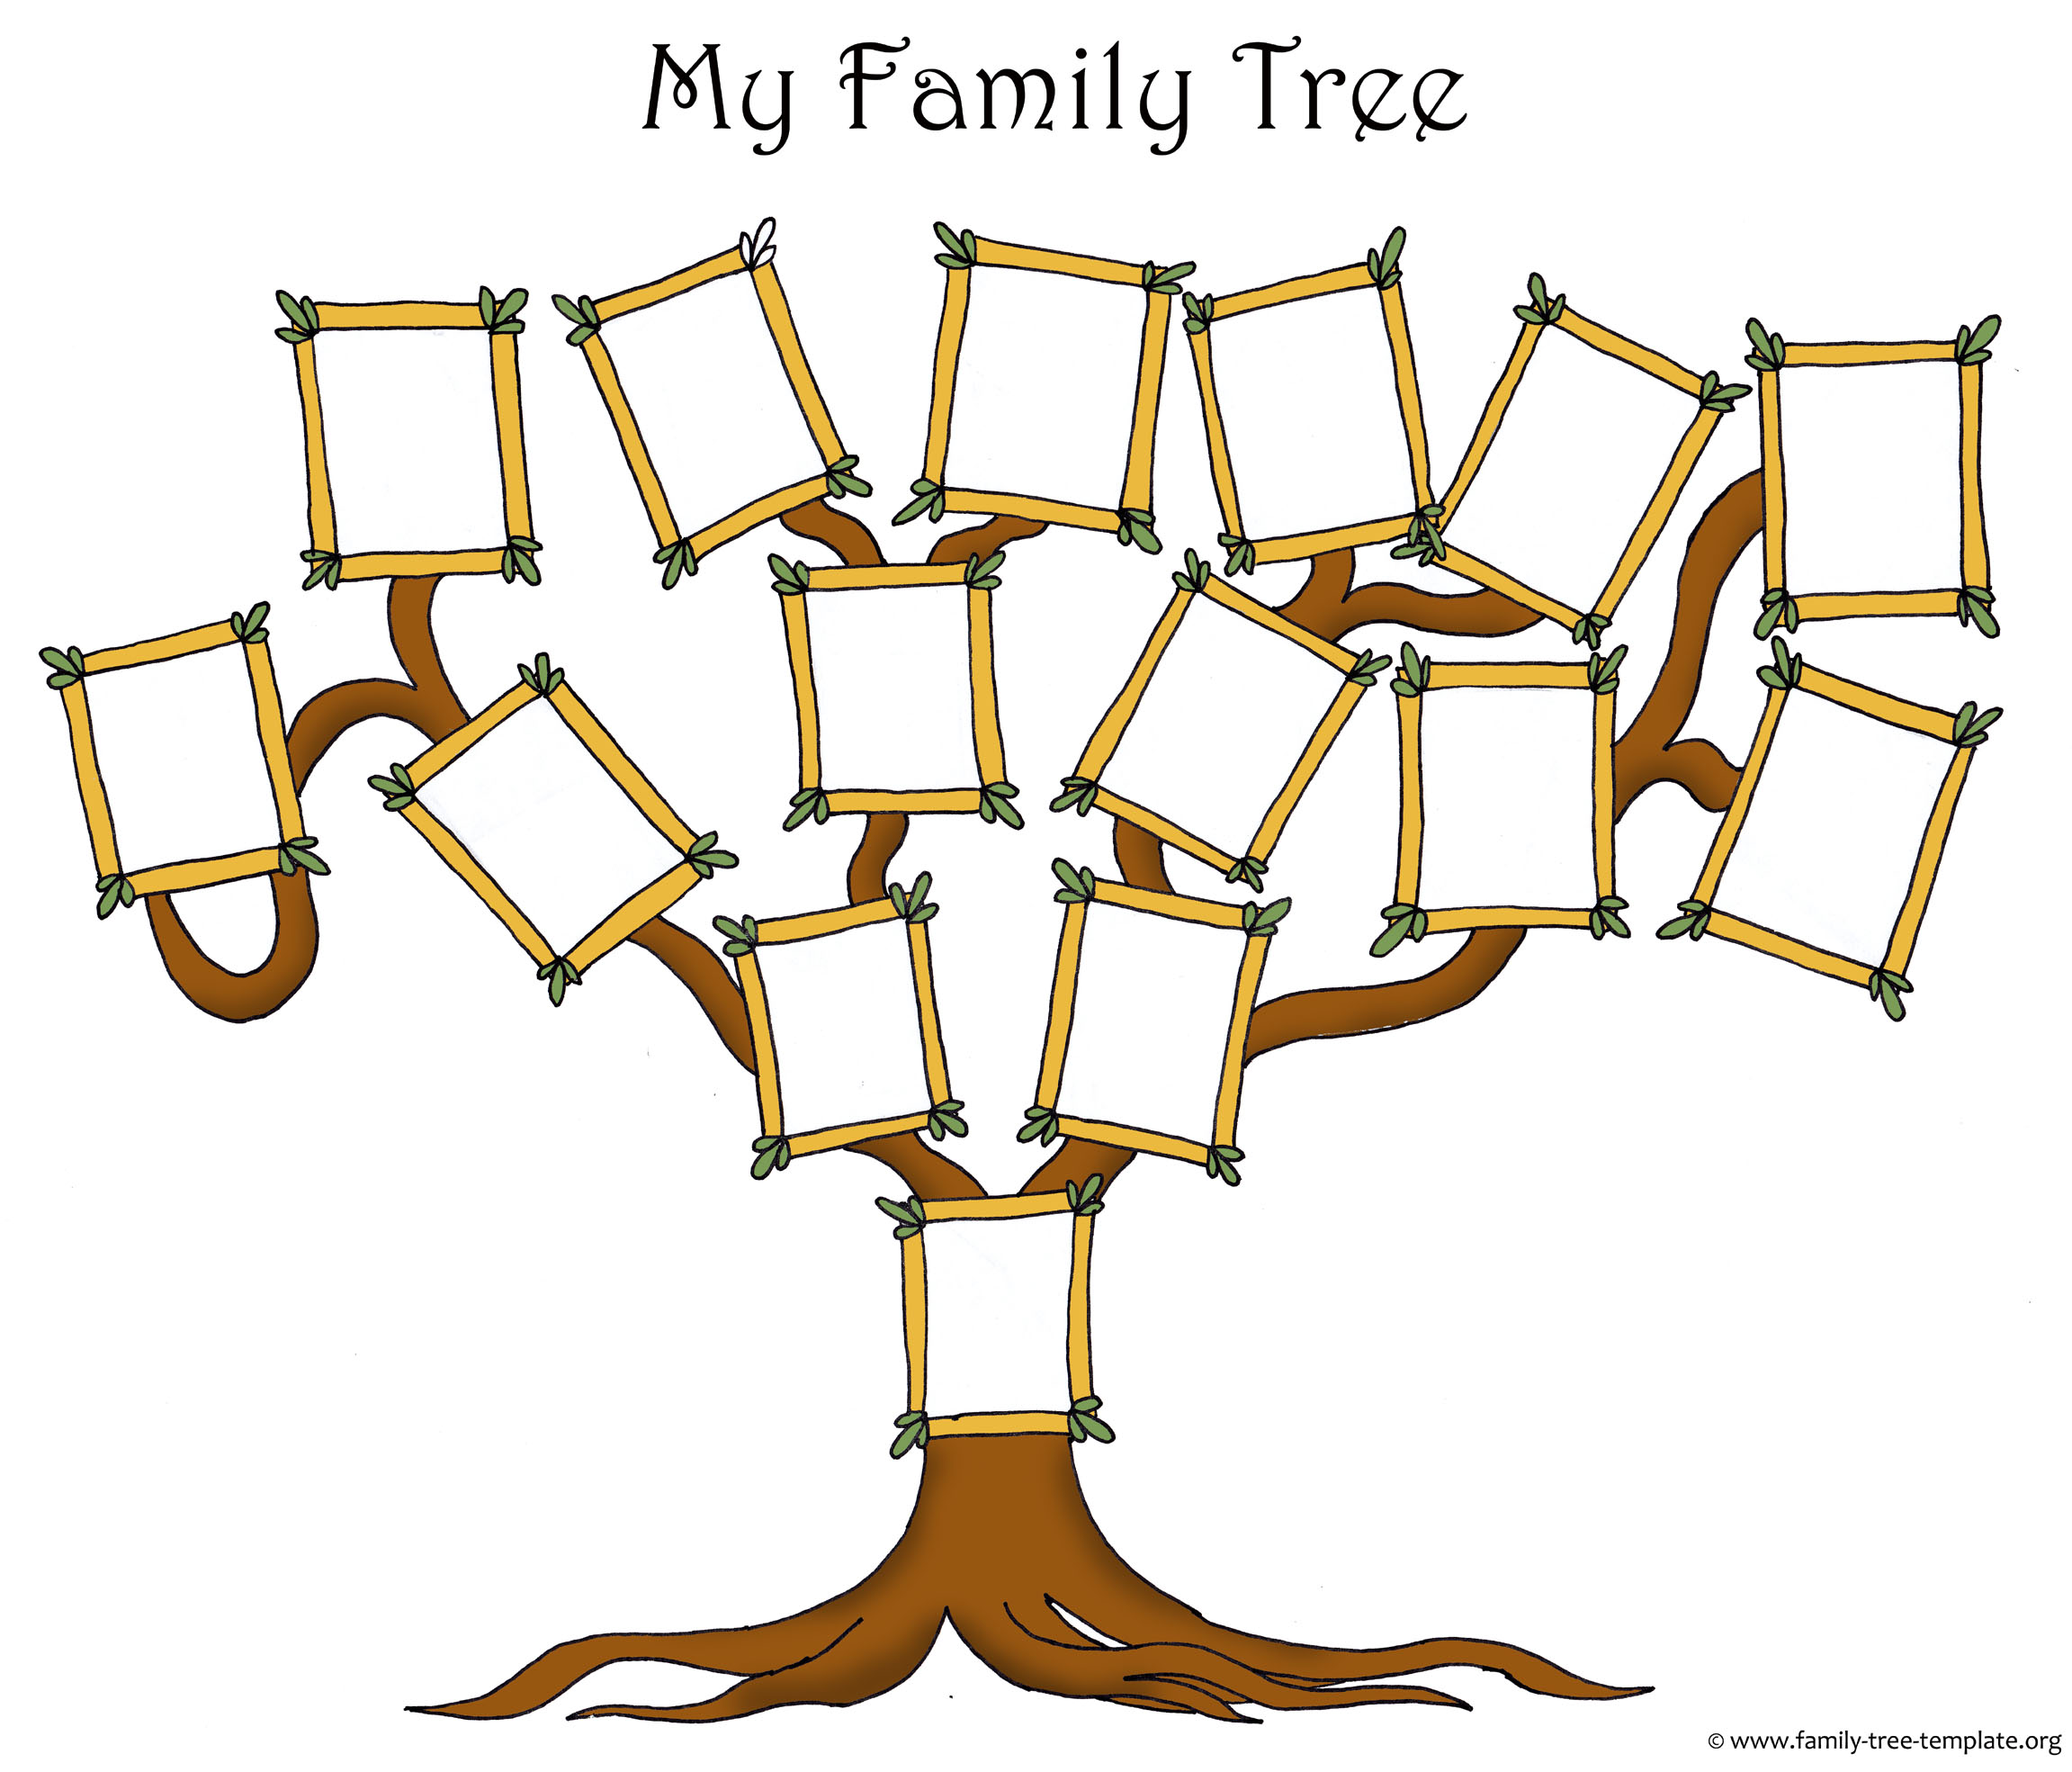 Free family tree template designs for making ancestry charts for Genealogy templates for family trees